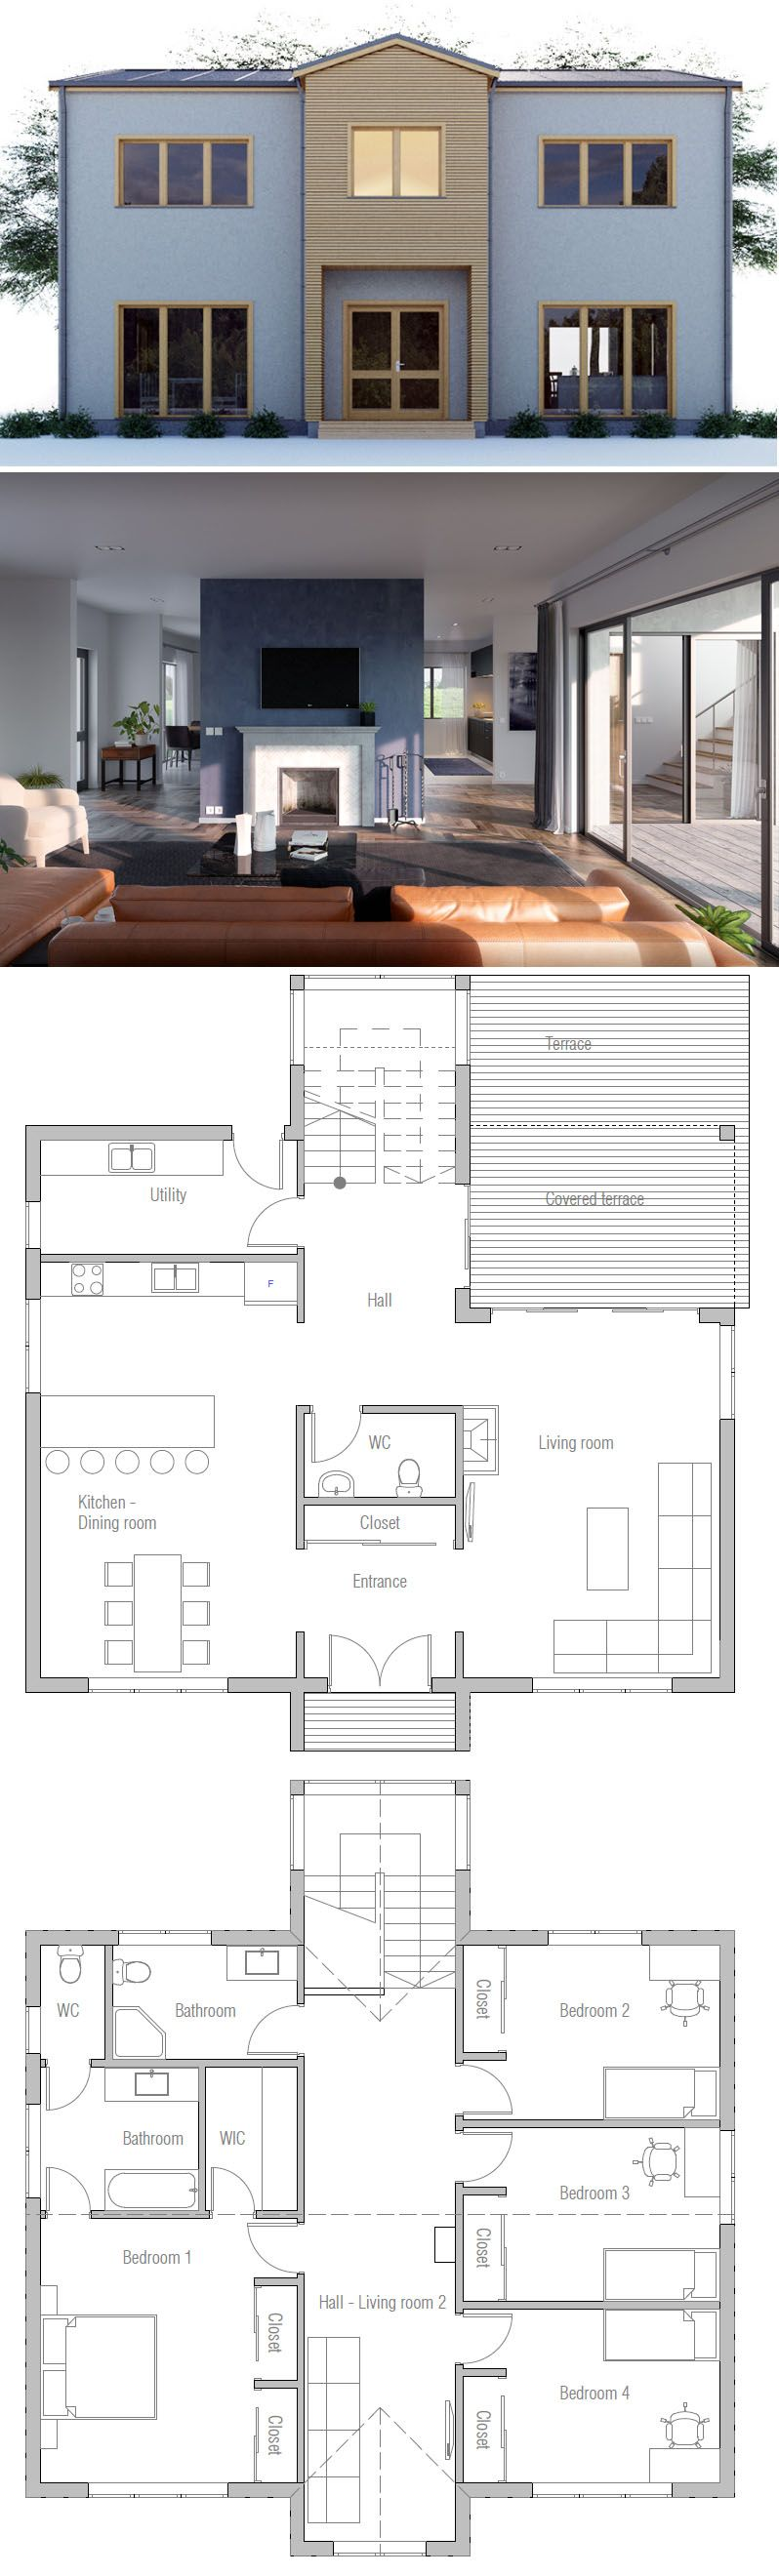 Architecture home plans house designs cabin small also ideas pinterest design rh